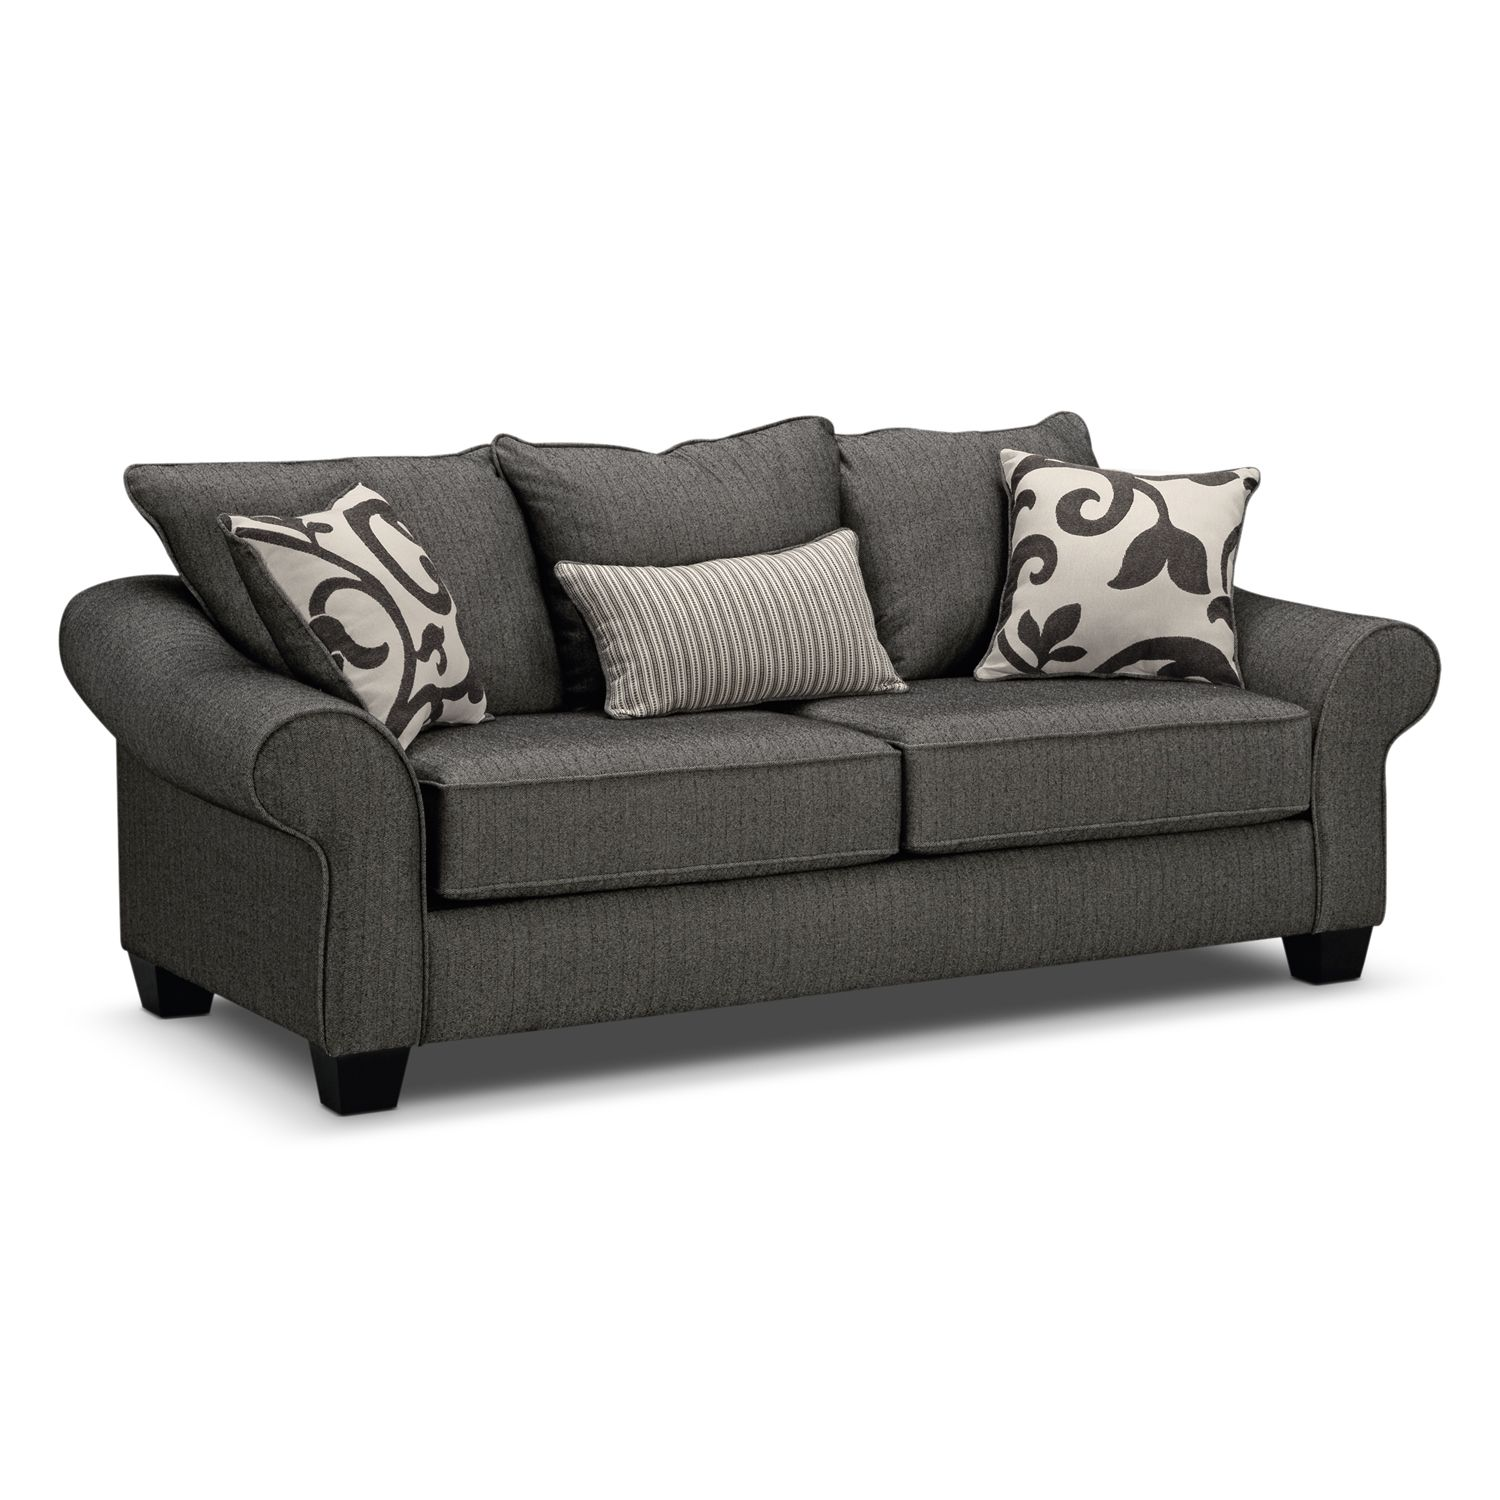 Astonishing American Signature Furniture Colette Sofa Gray By Kroehler Ncnpc Chair Design For Home Ncnpcorg